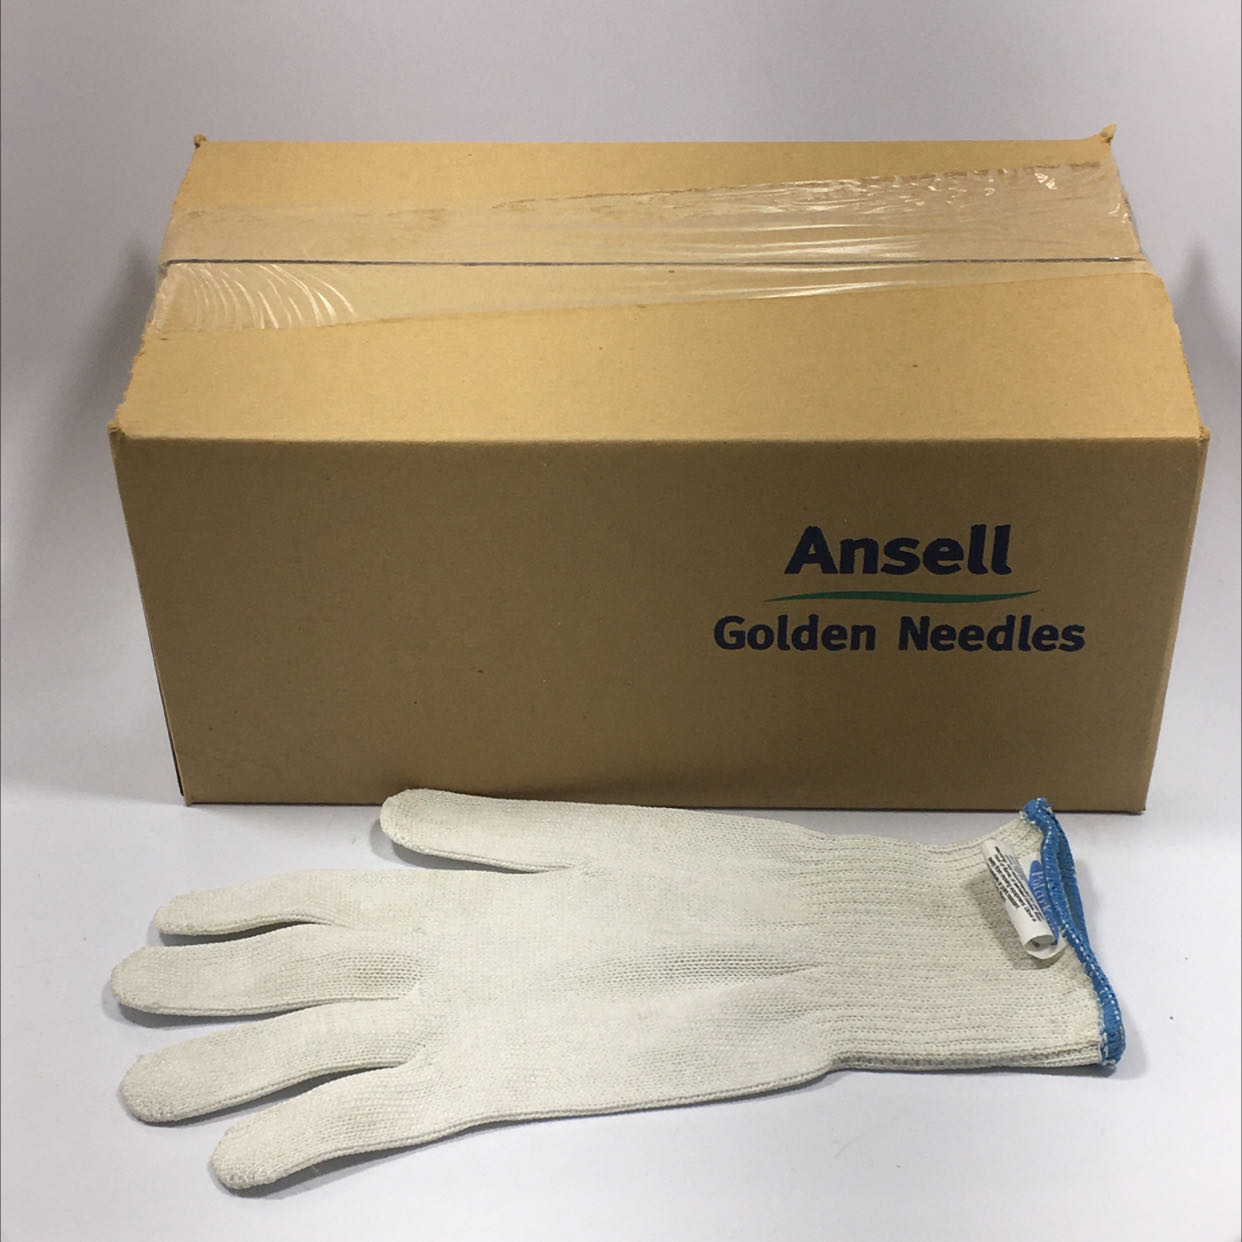 Ansell PBP48L Golden Needles Gloves 245326 Lot of 12